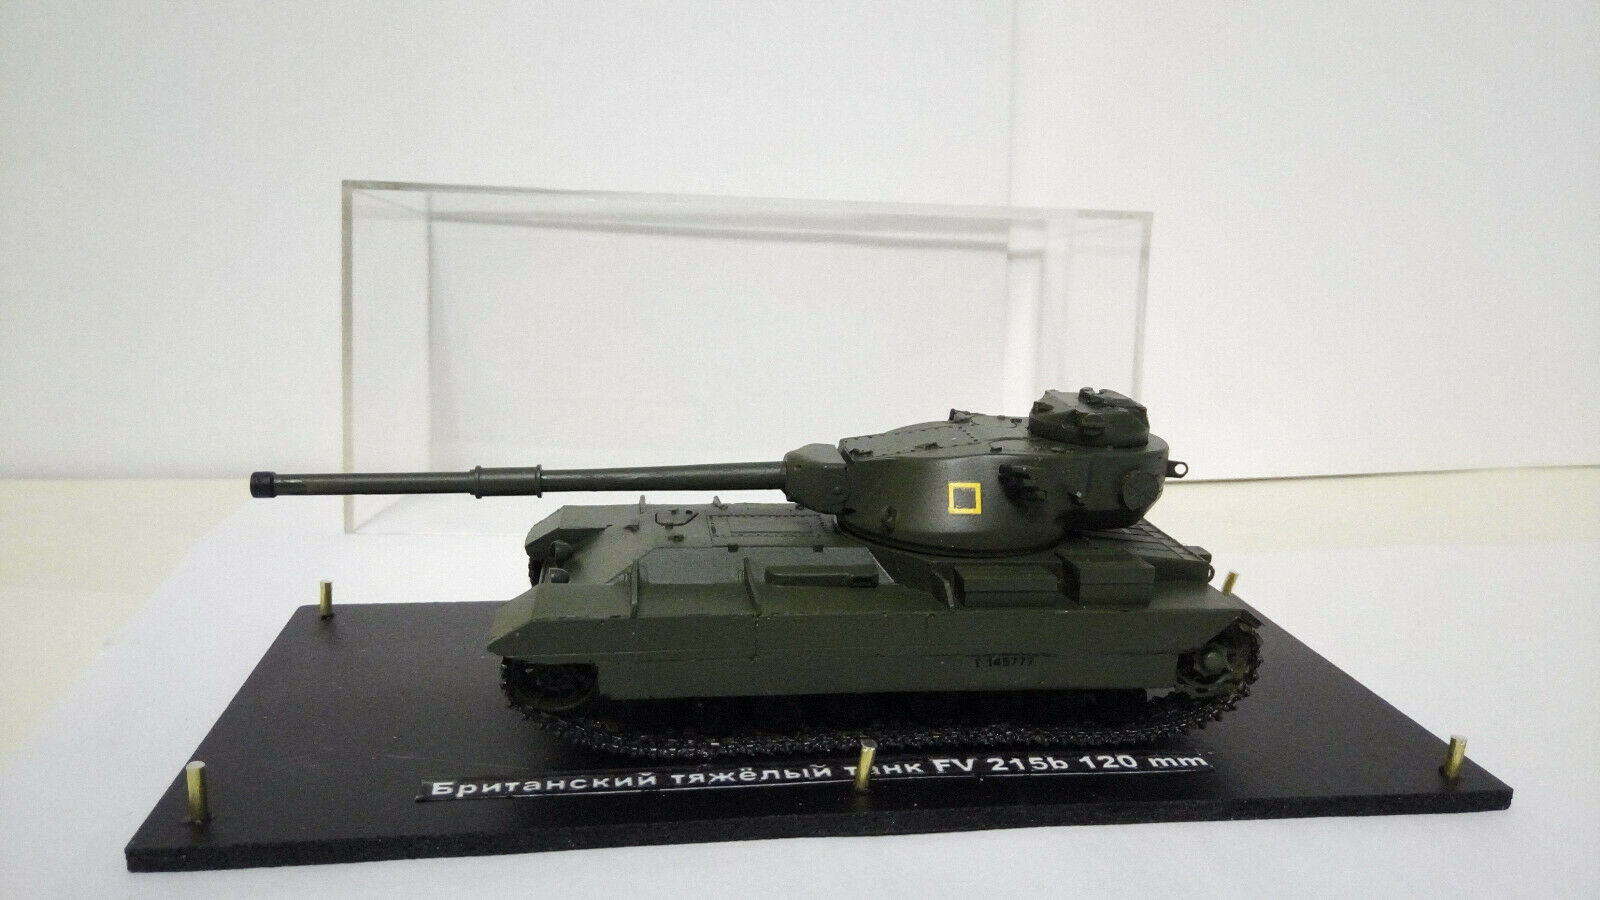 Heavy tank Columbia fv 215b 120 mm (1 72) (resin)